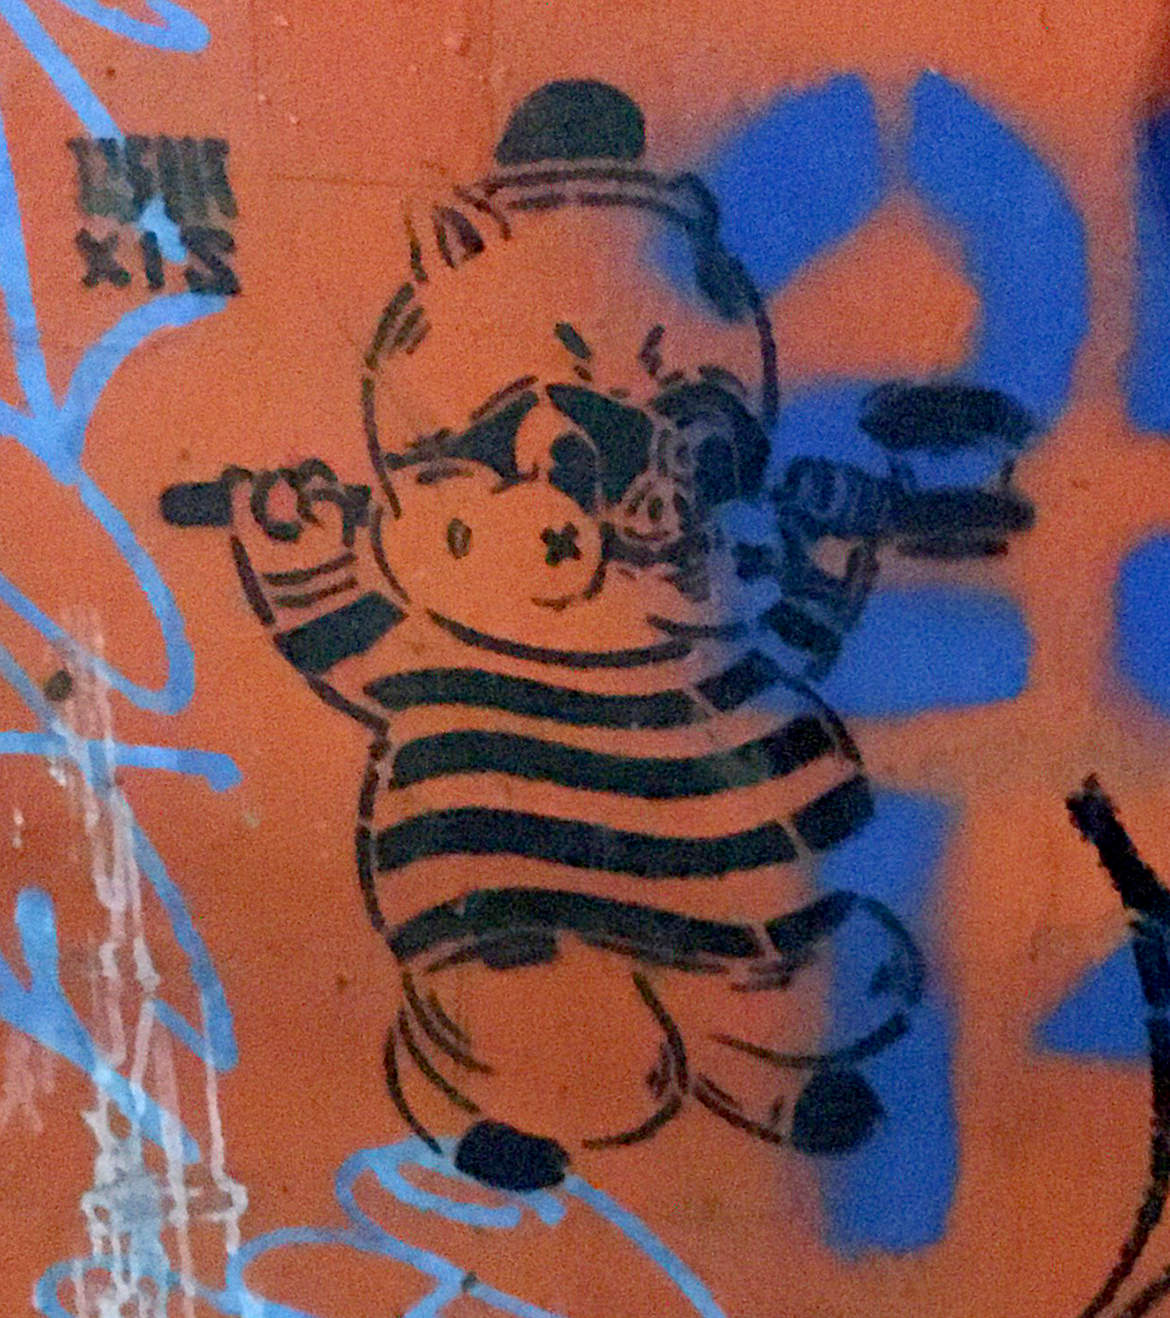 Stencil grafitti of a crooked pig